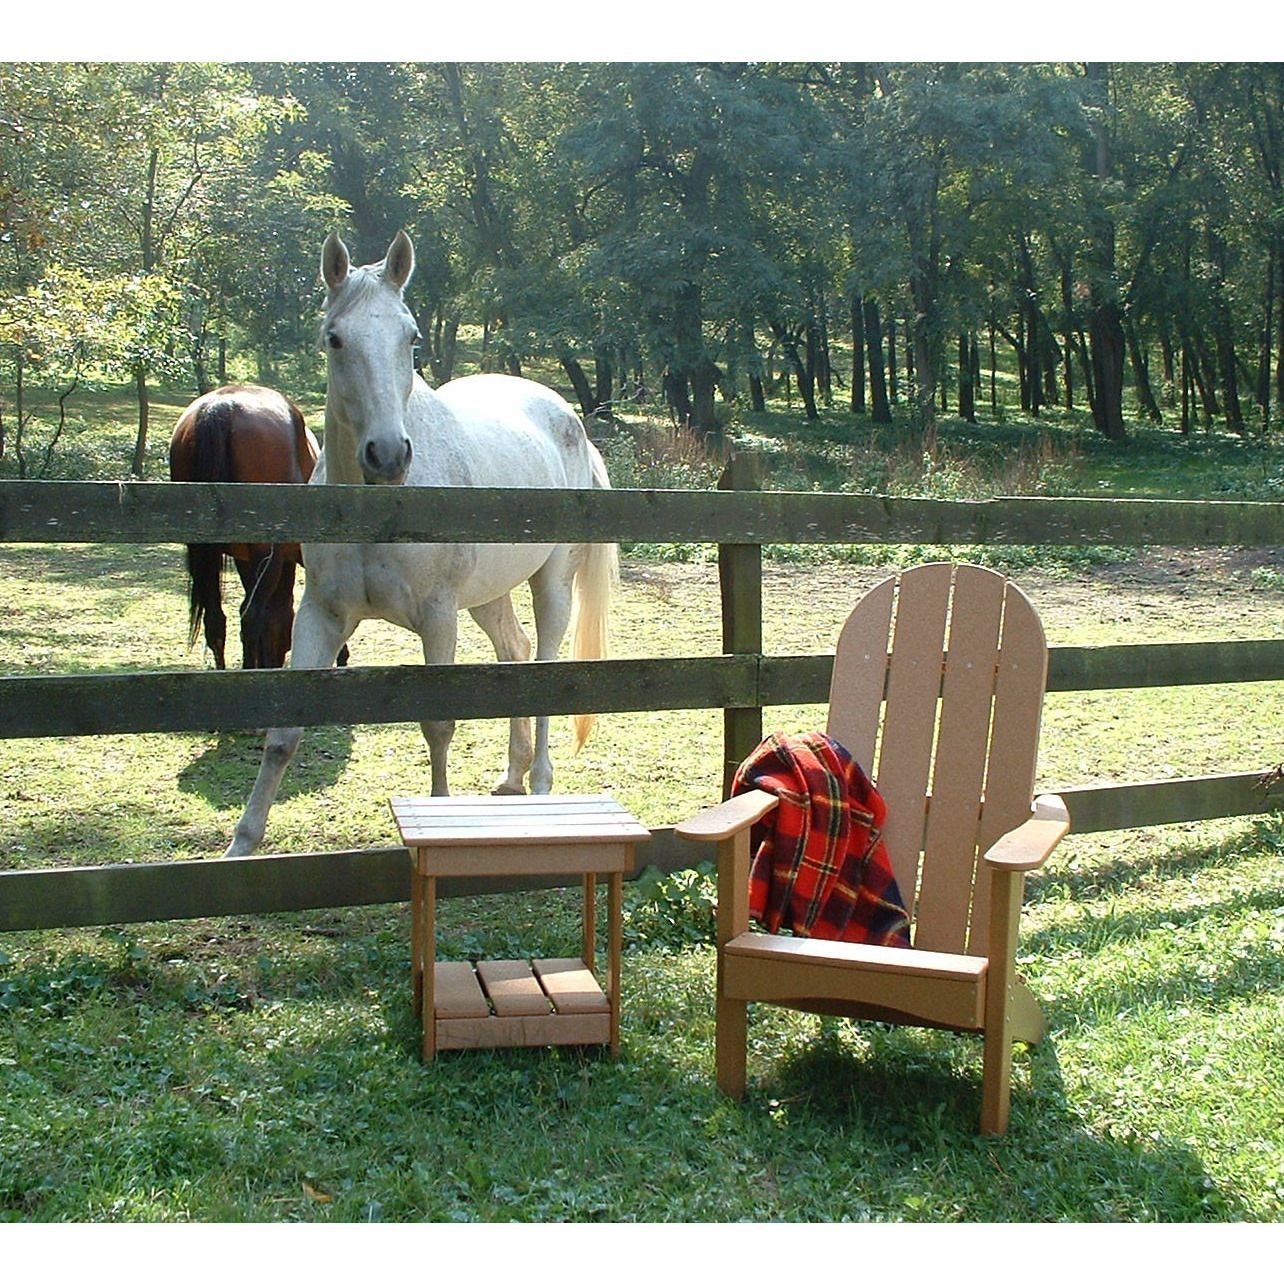 Tailwind furniture recycled plastic round back adirondack chair